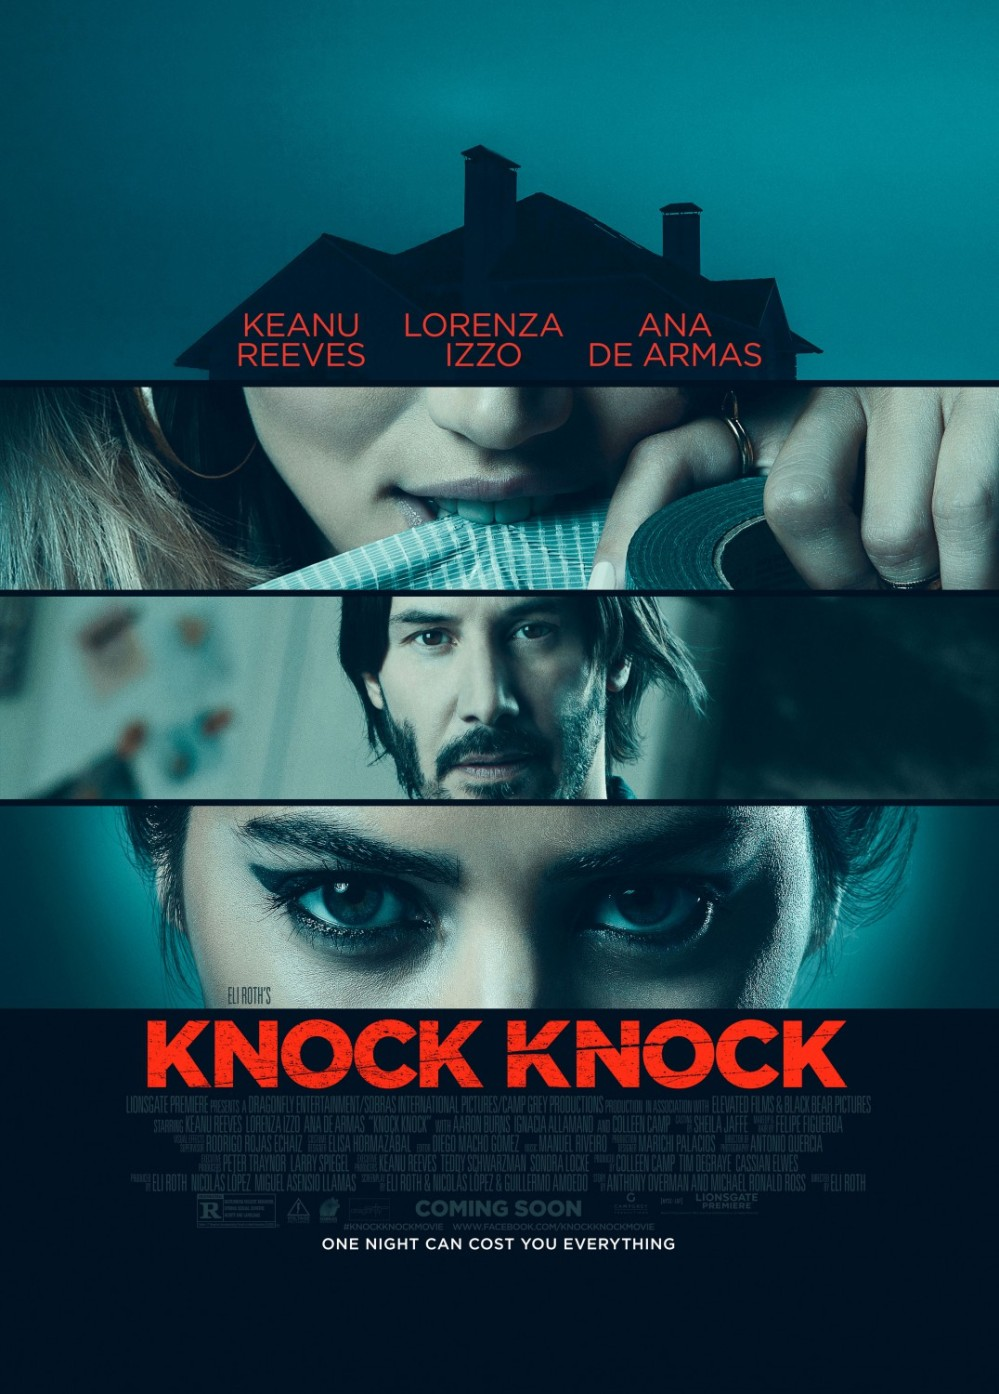 Knock Konck movie poster